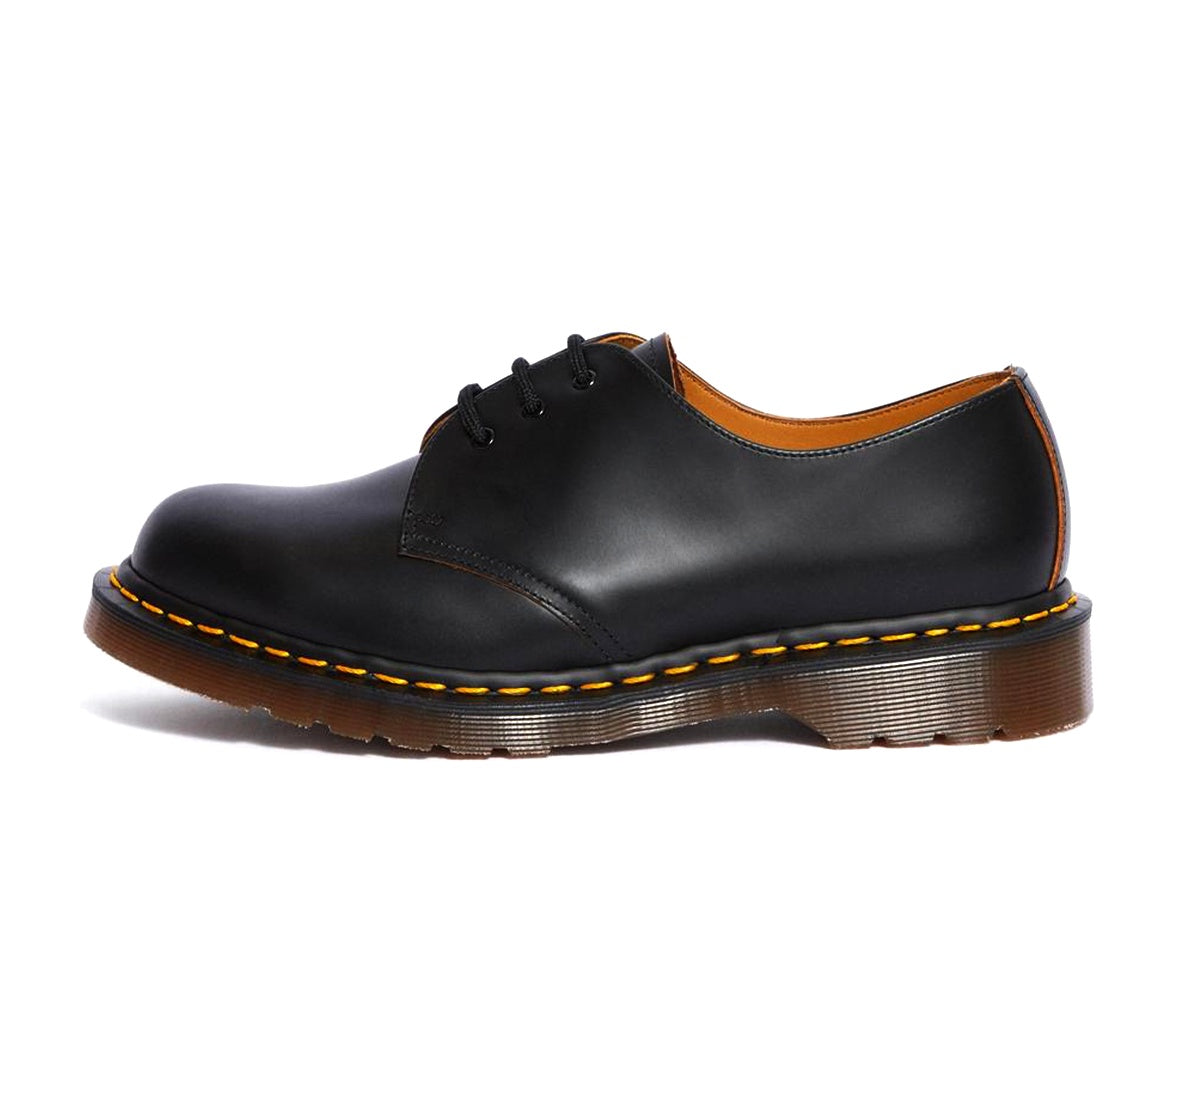 Dr. Martens Made in England 1461 Vintage - Black